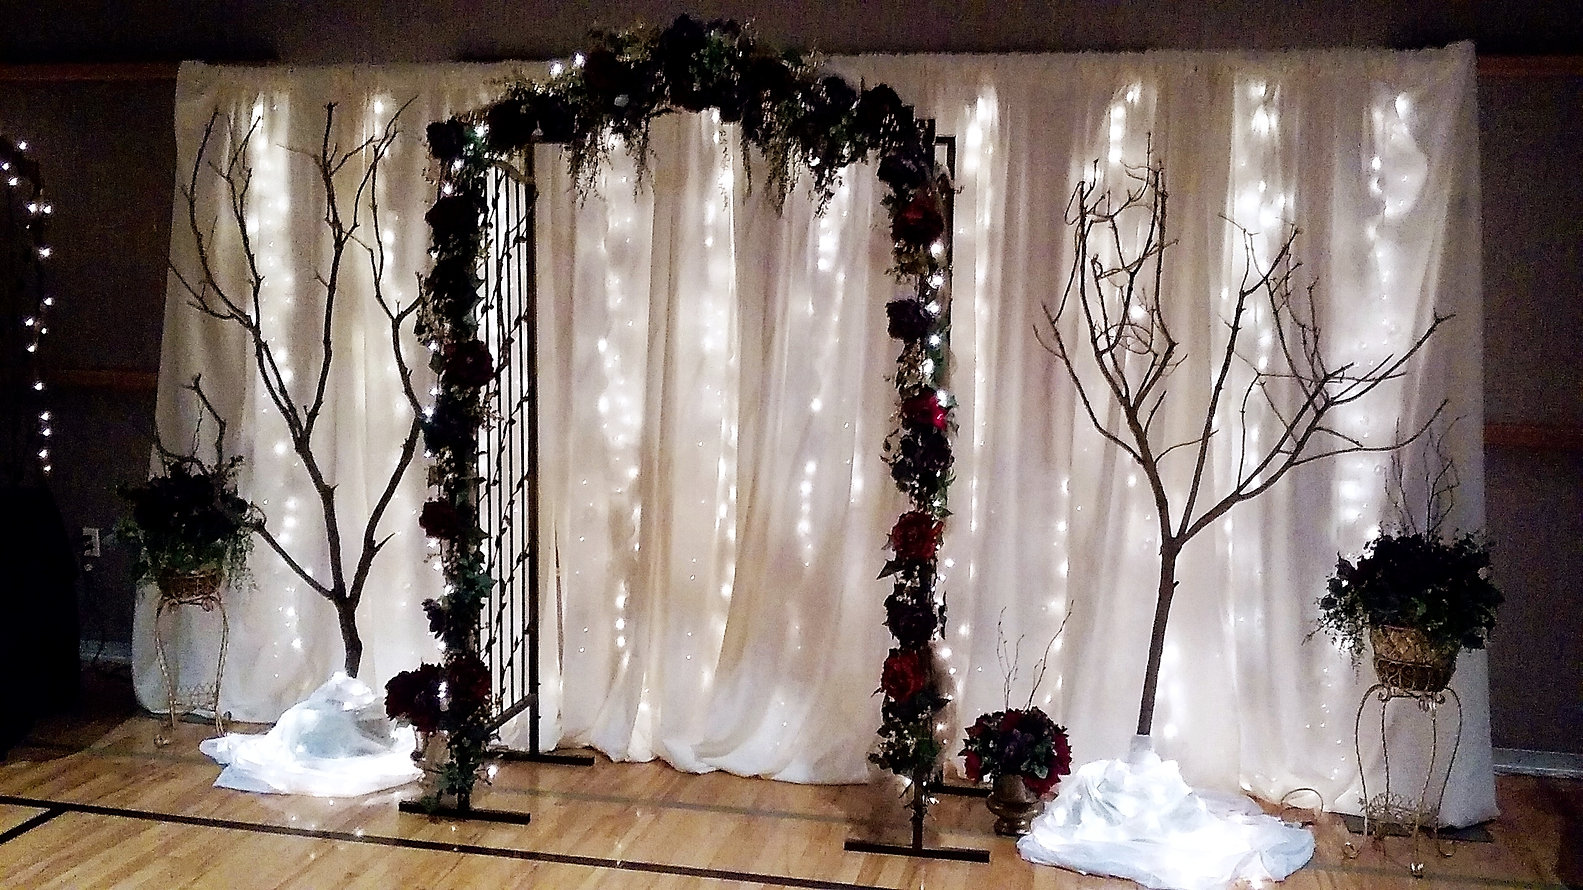 chair cover rentals utah eclectic dining chairs uk wedding autumn pkg weddings for less inc